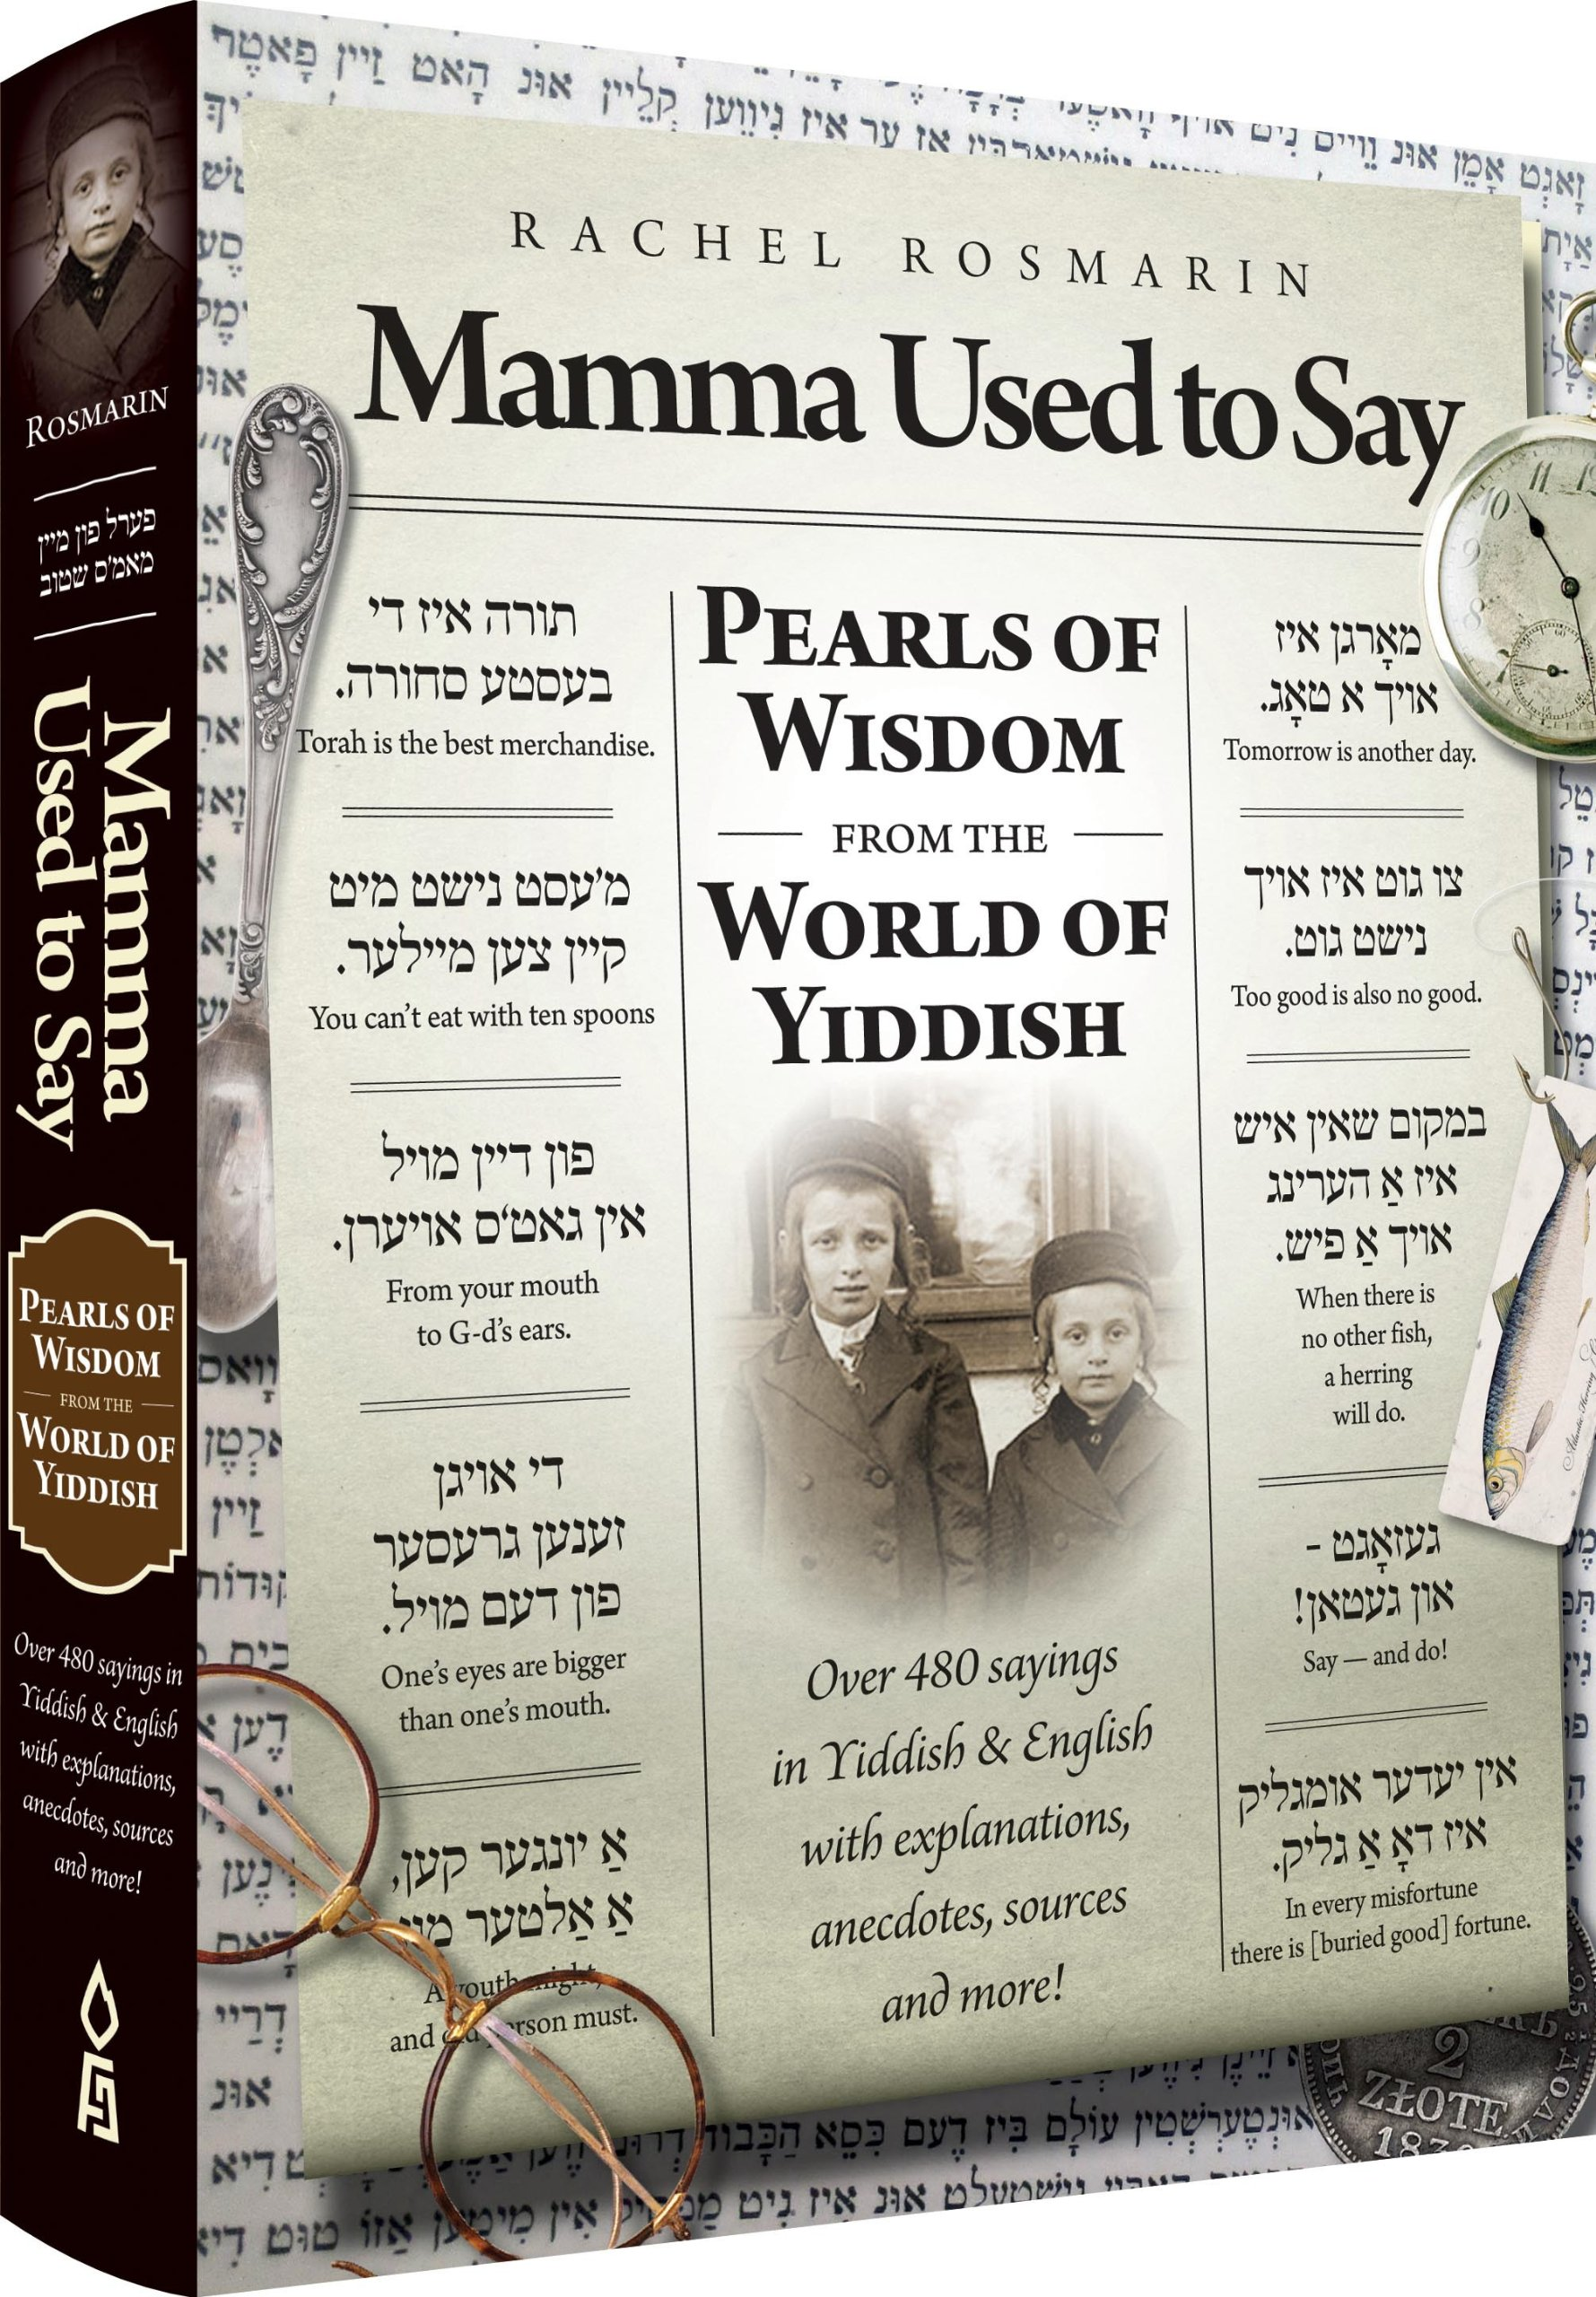 Mamma Used to Say: Pearls of Wisdom from the World of Yiddish by Rachel Rosmarin